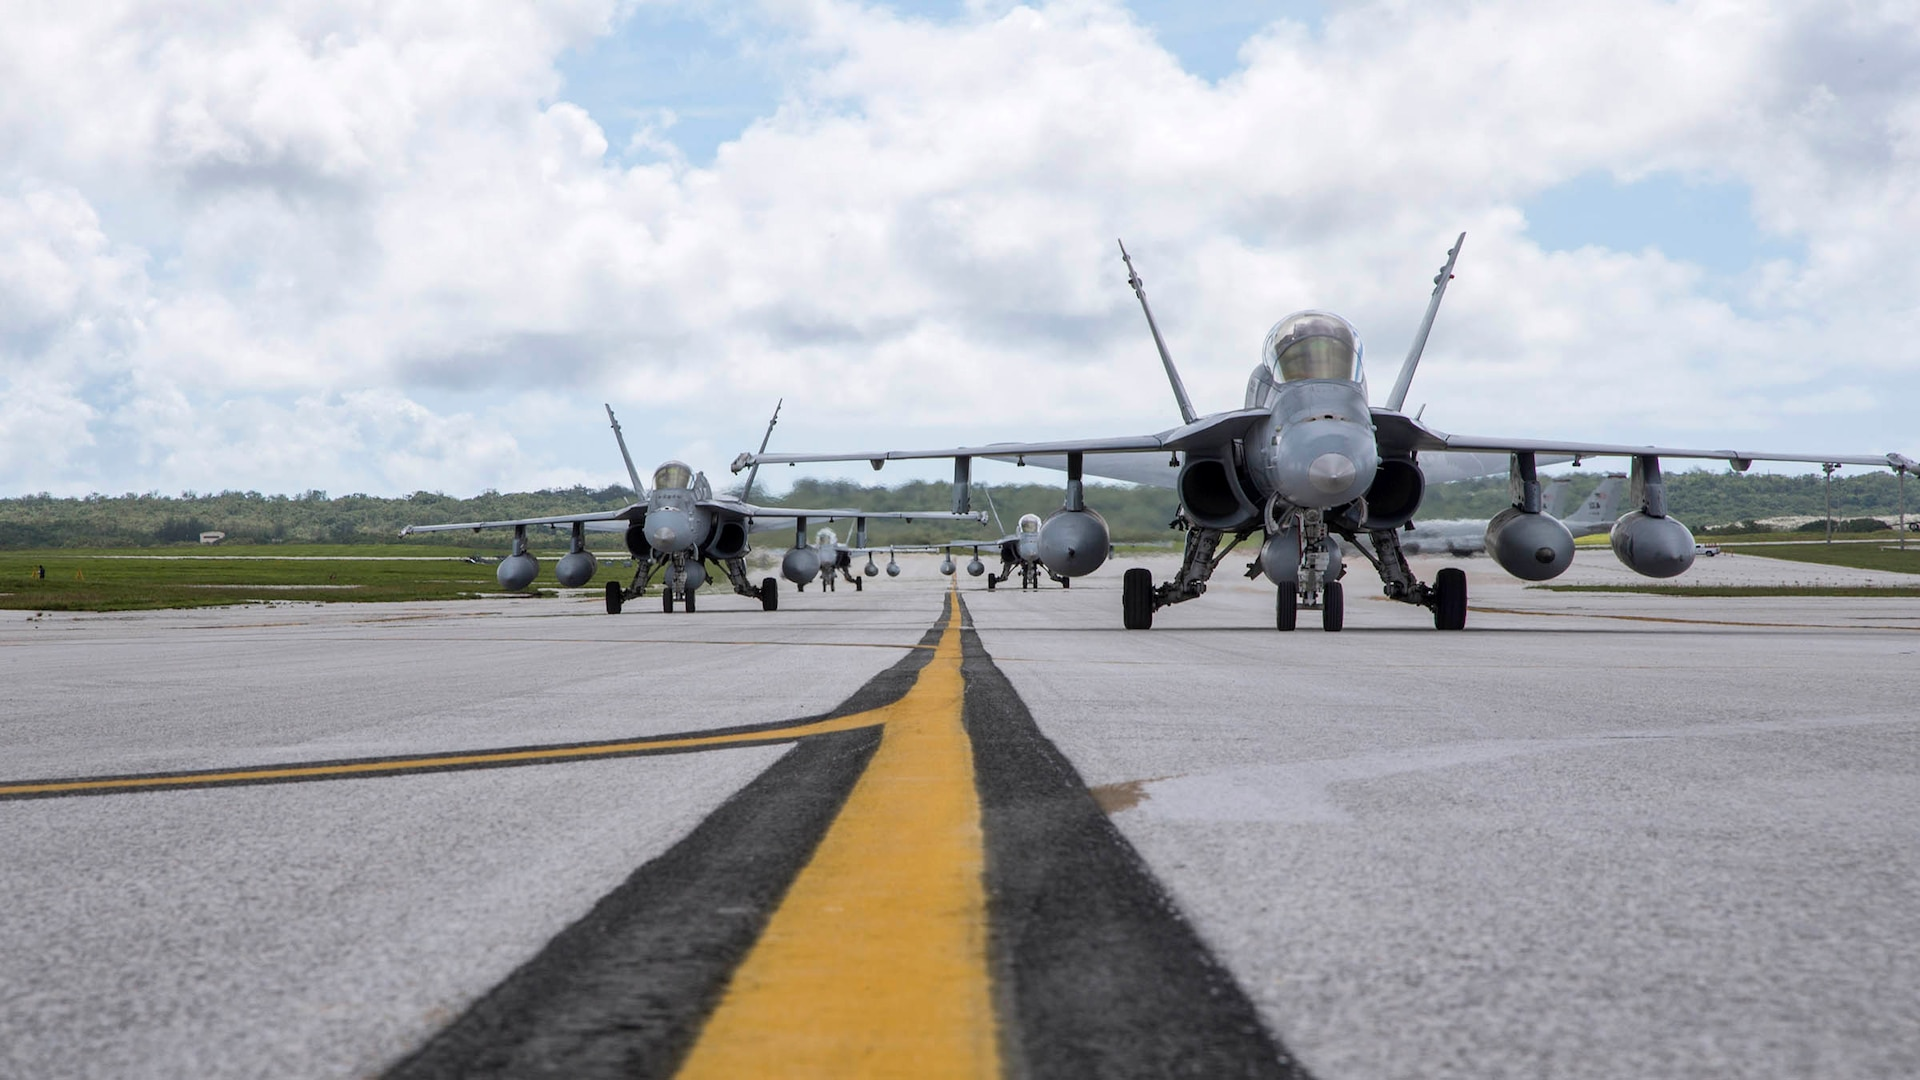 F/A-18 Hornets lined up on a flight line from a ground-level perspective.